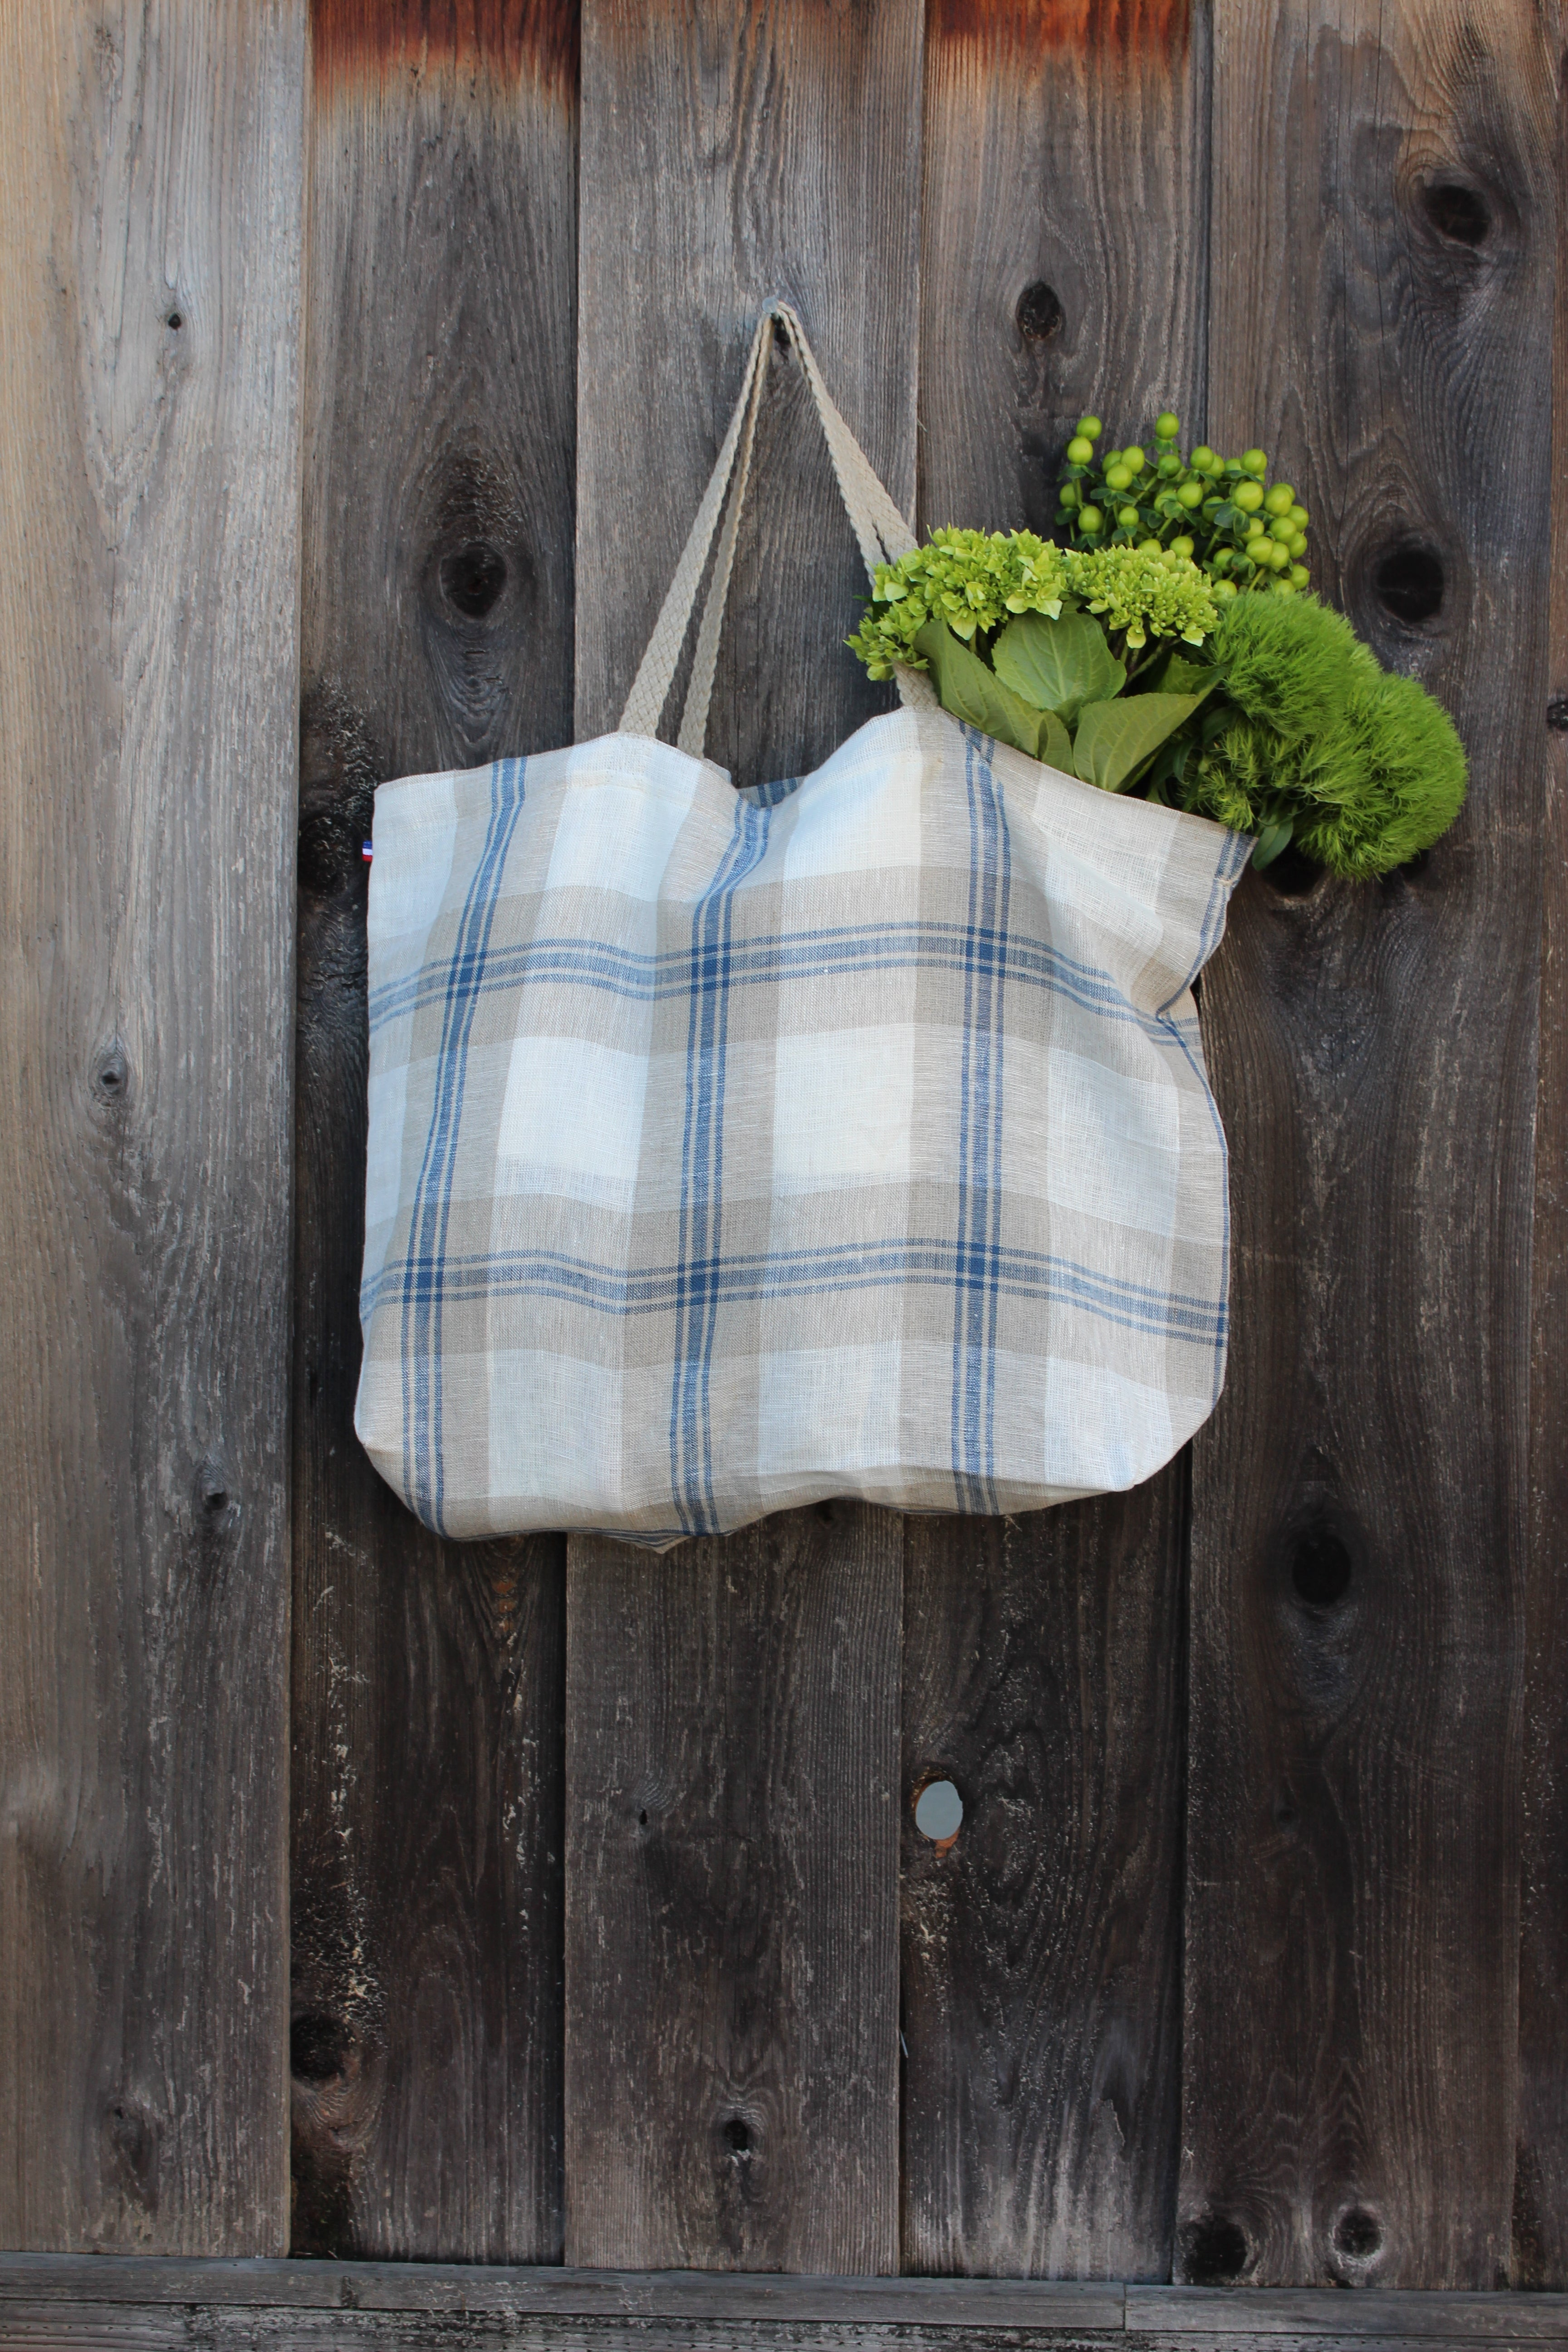 Cassandre Blue Plaid Thieffry Linen Shopping Bag with Braided Handle and Inner Zipper Pocket